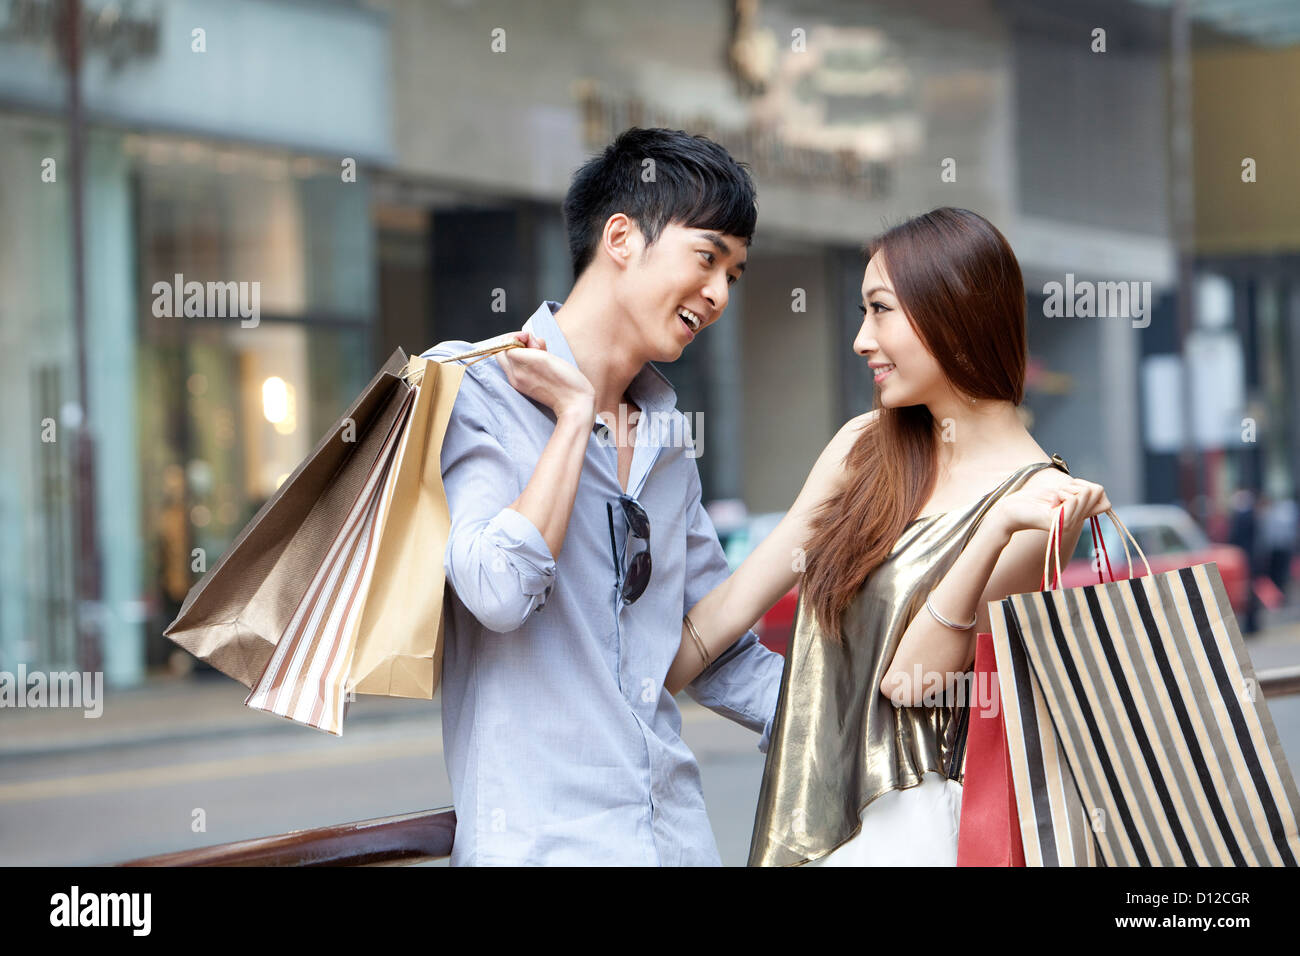 Happy young couple looking into each other's eyes tenderly in the street, Hong Kong - Stock Image